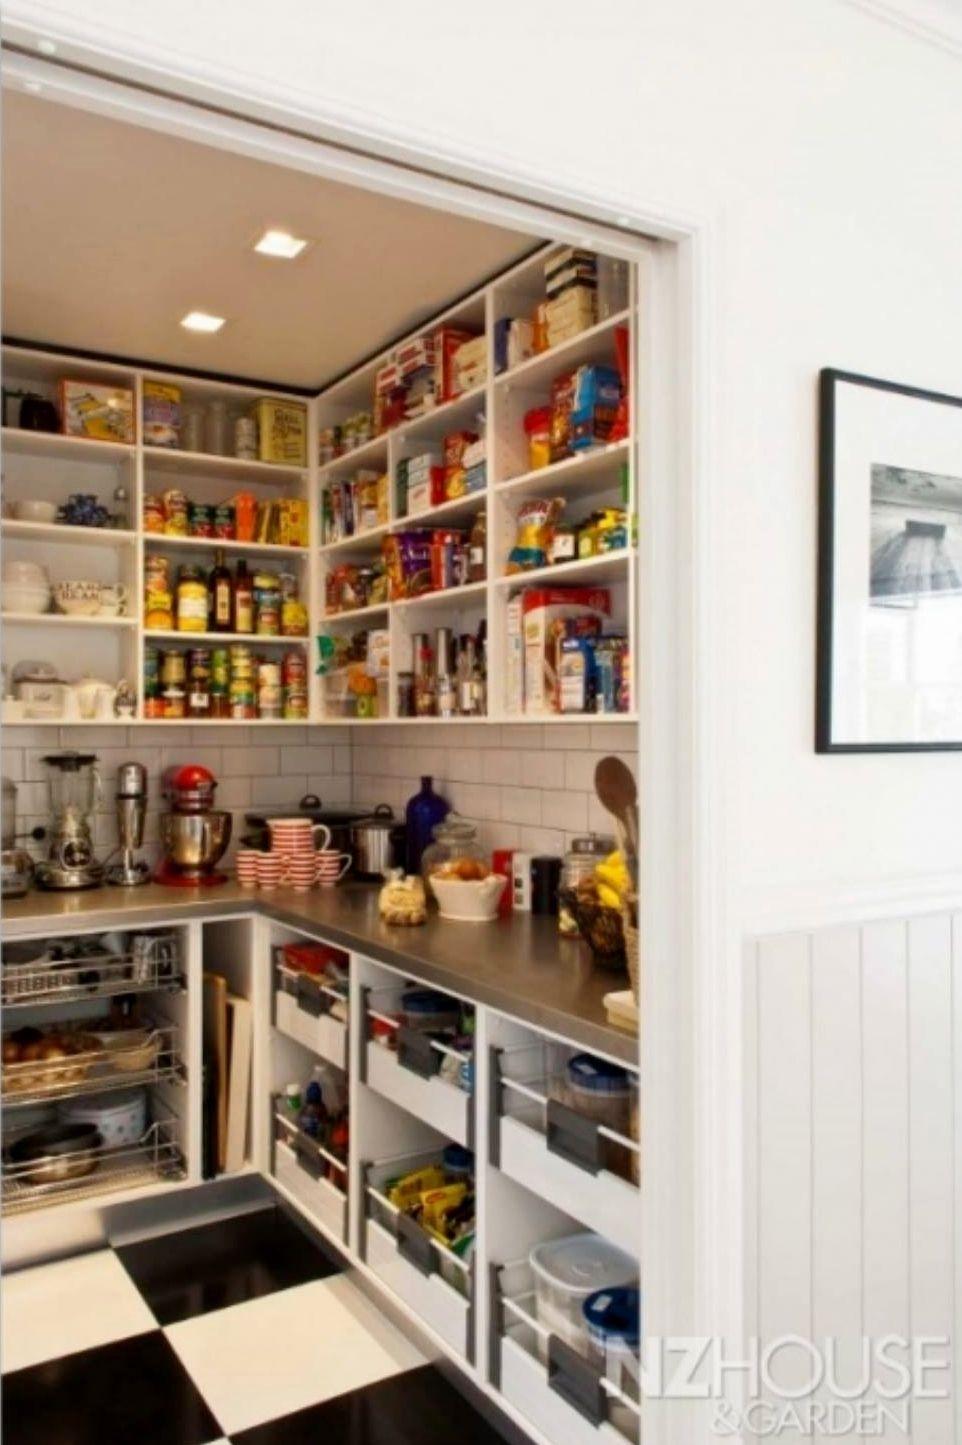 Counter top space in pantry to keep all the appliances off the